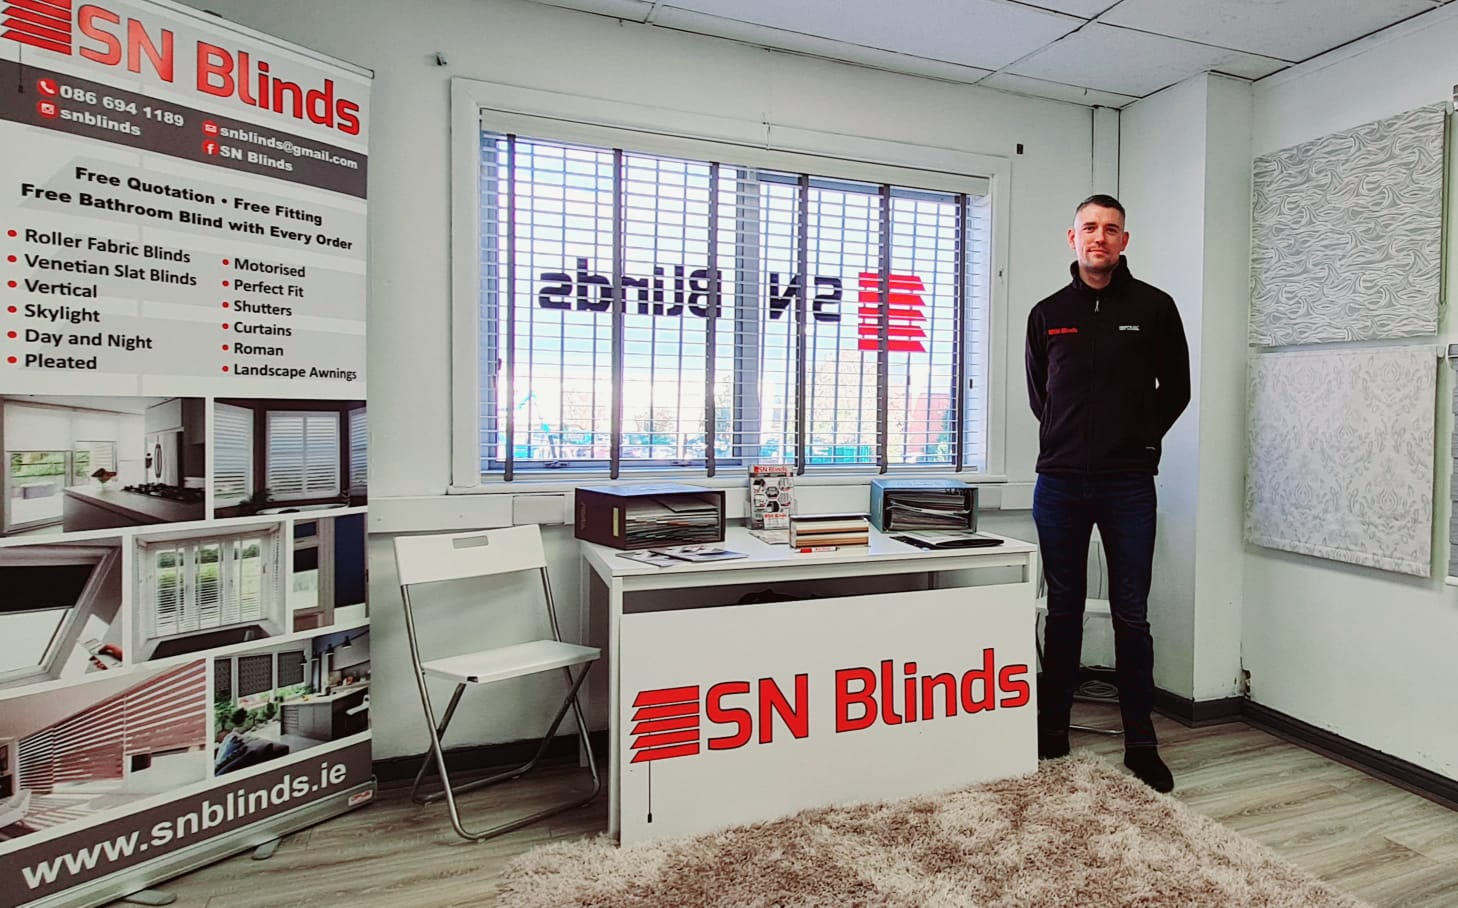 Owner Sam Nolan in the SN Blinds office.